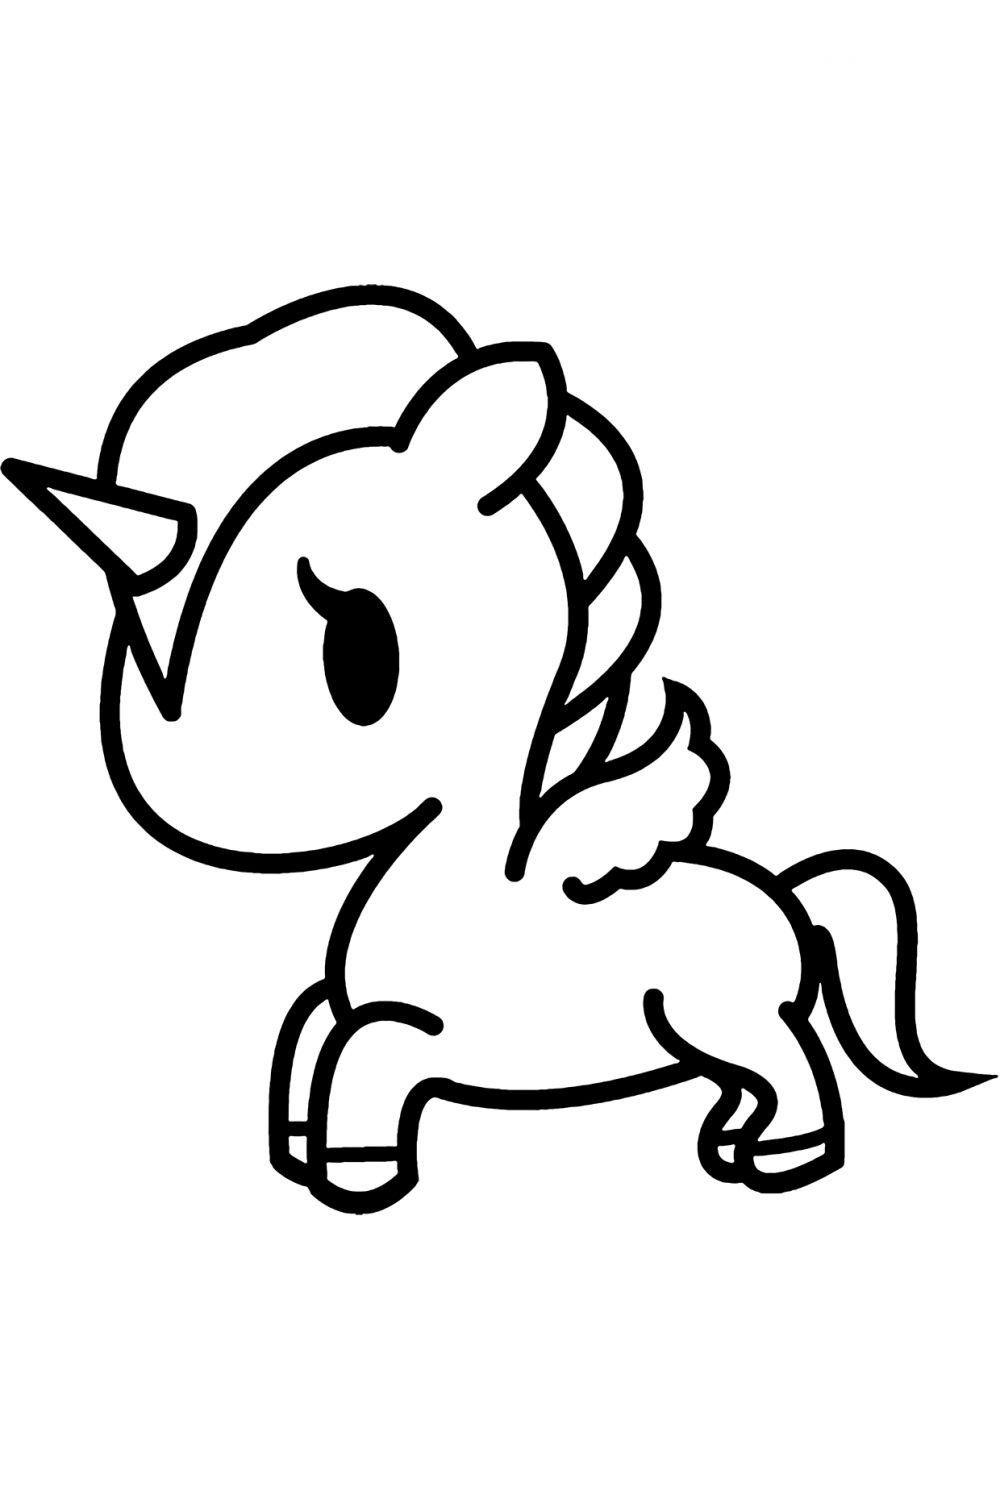 Cute Unicorn Coloring Pages Cute Unicorn Coloring Pages Youloveit Unicorn Coloring Pages Cute Coloring Pages Coloring Pages